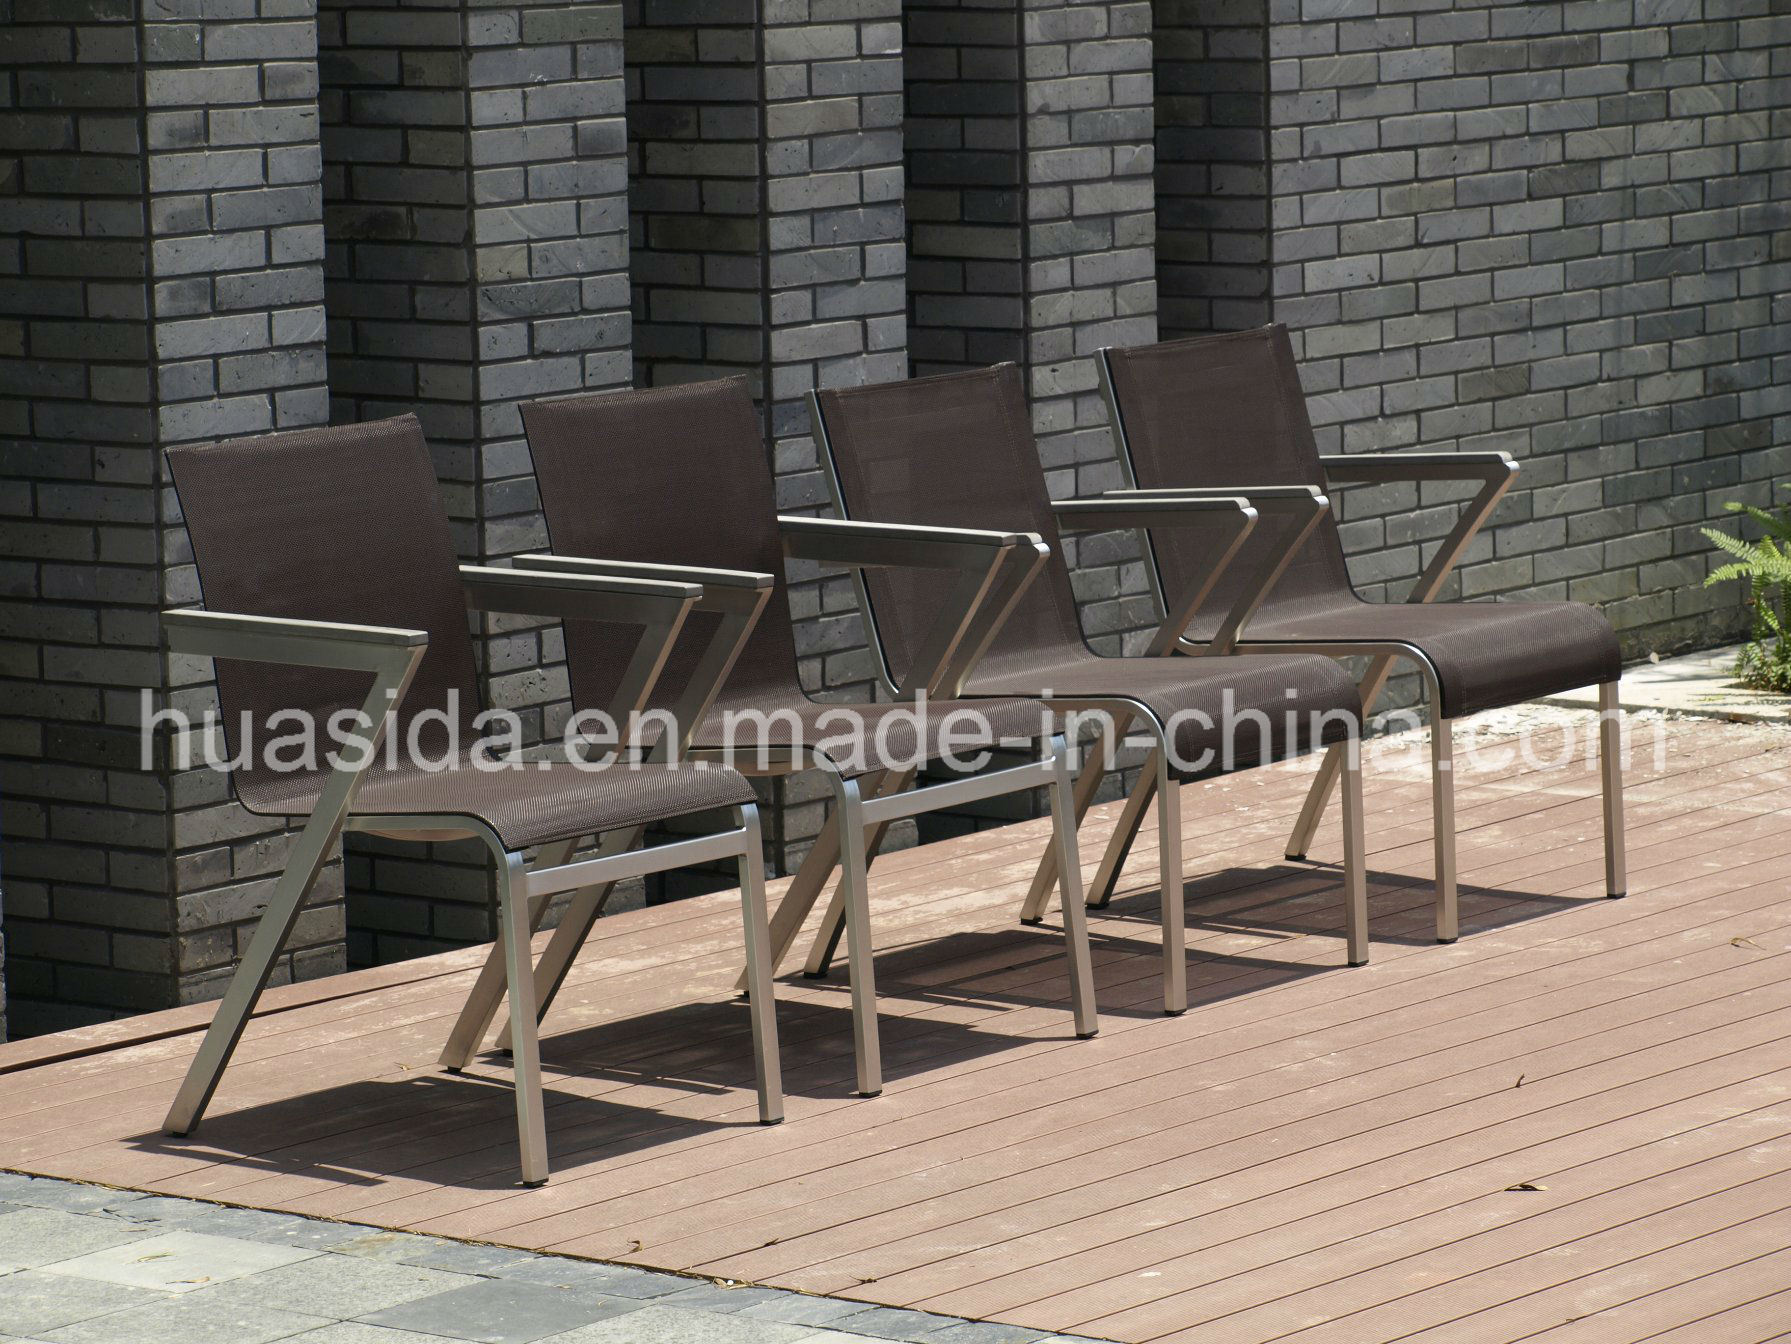 1.6m 4-Seats Stainless Steel Dining Table Set